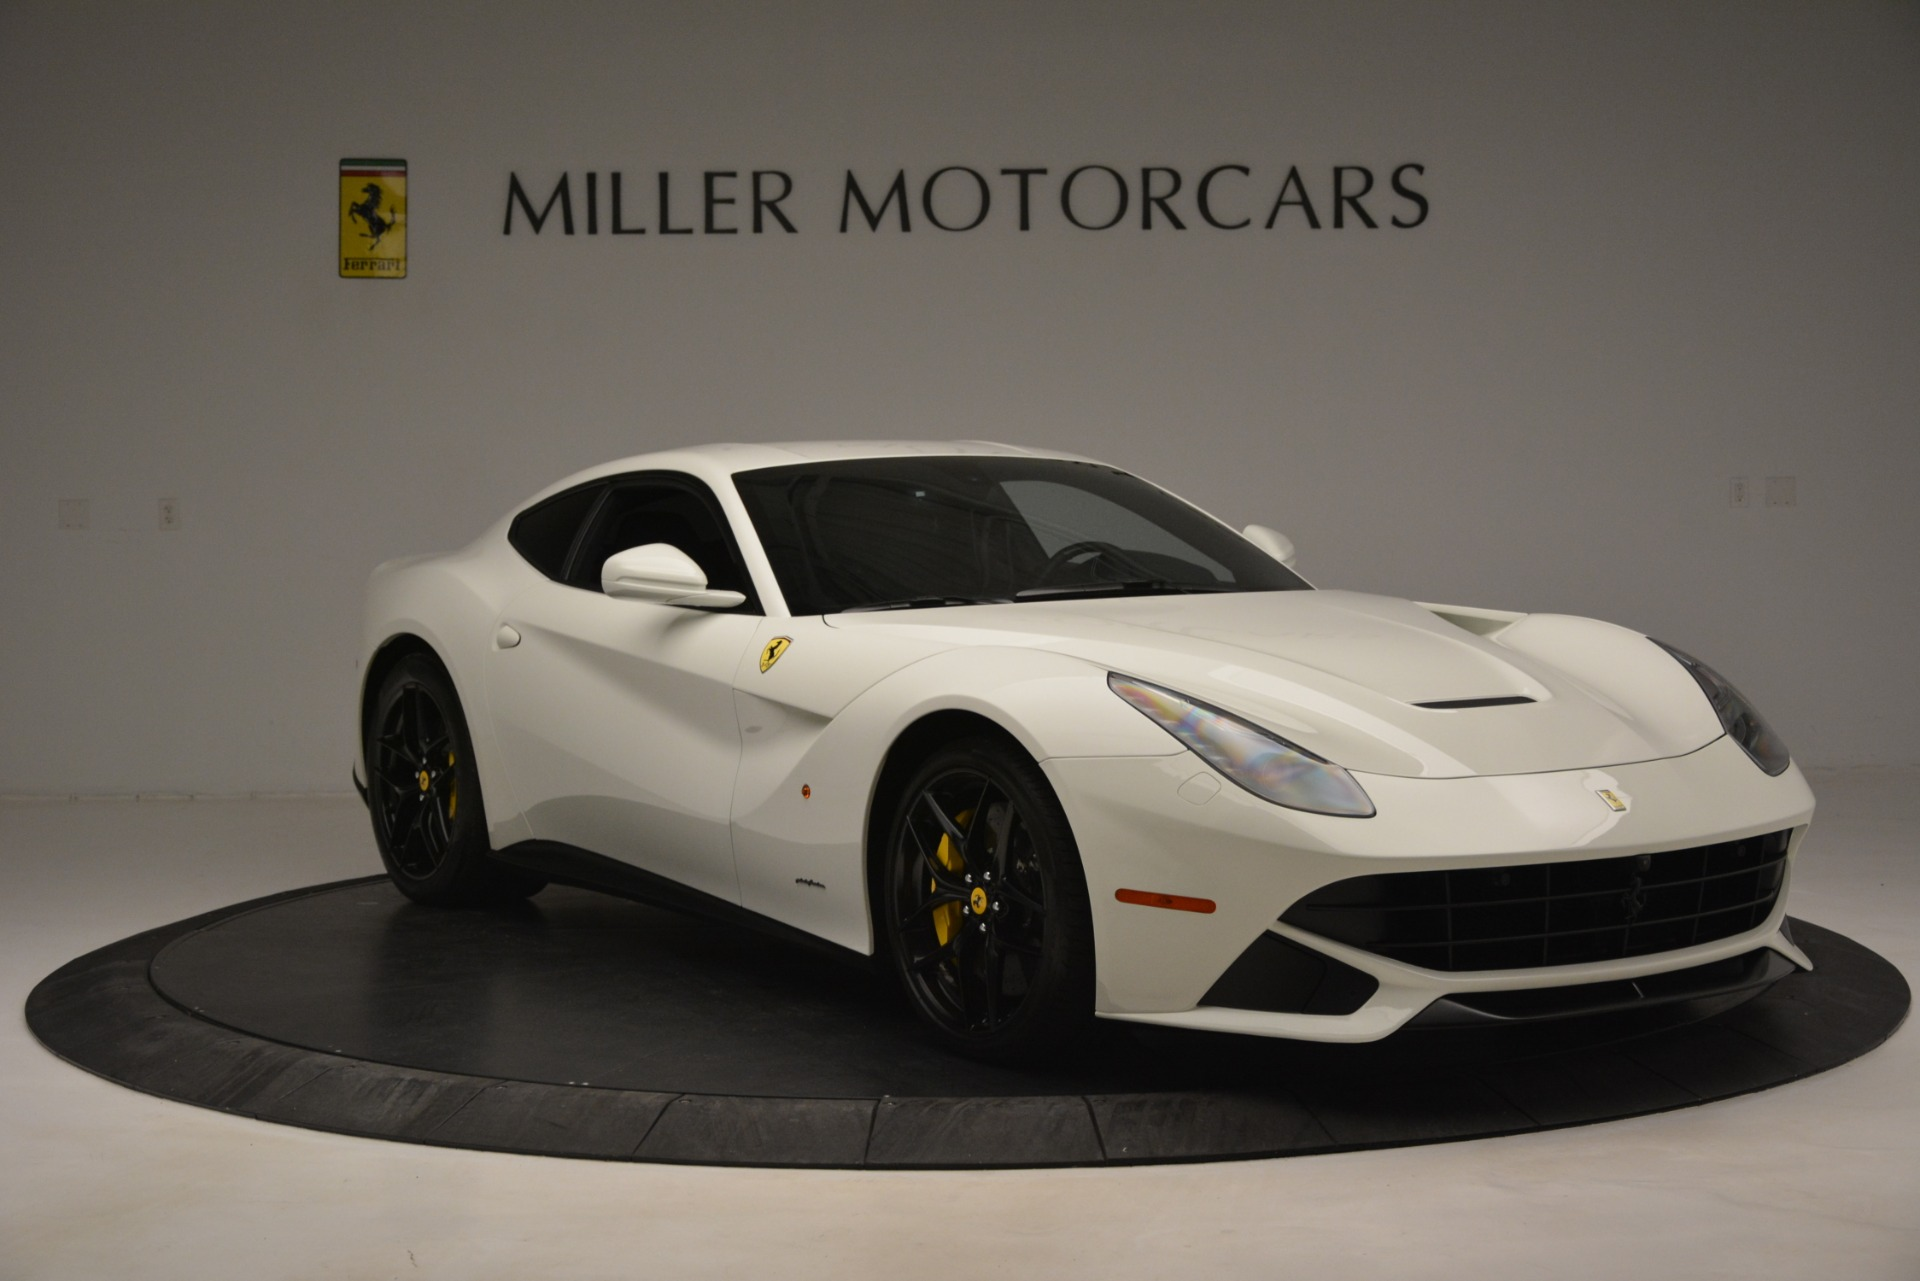 Pre Owned 2015 Ferrari F12 Berlinetta For Sale Miller Motorcars Stock 4549